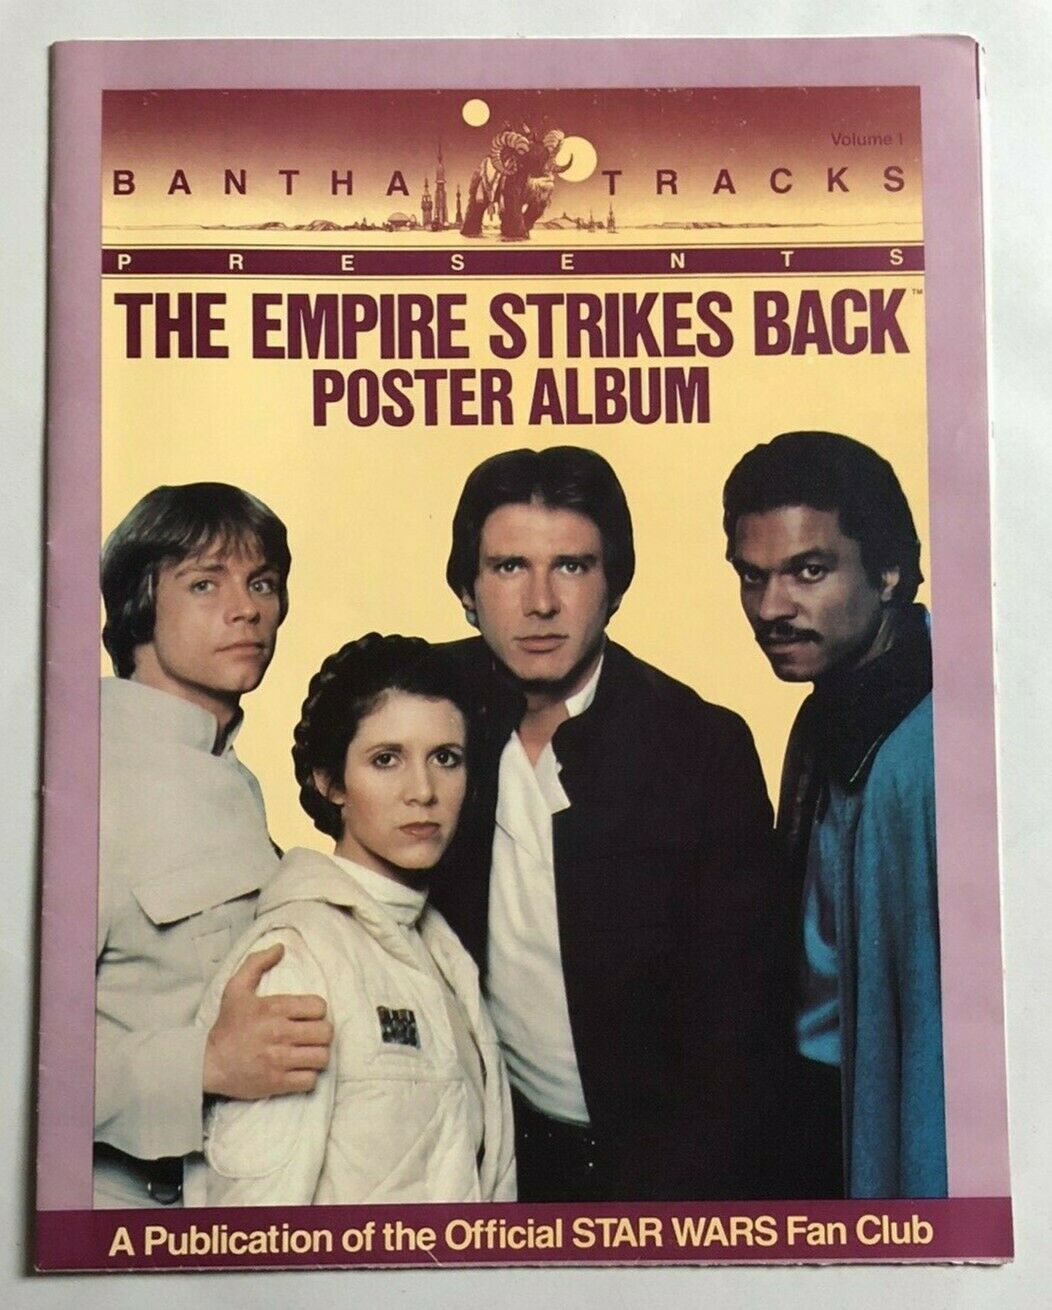 Bantha Tracks Presents The Empire Strikes Back Poster Album